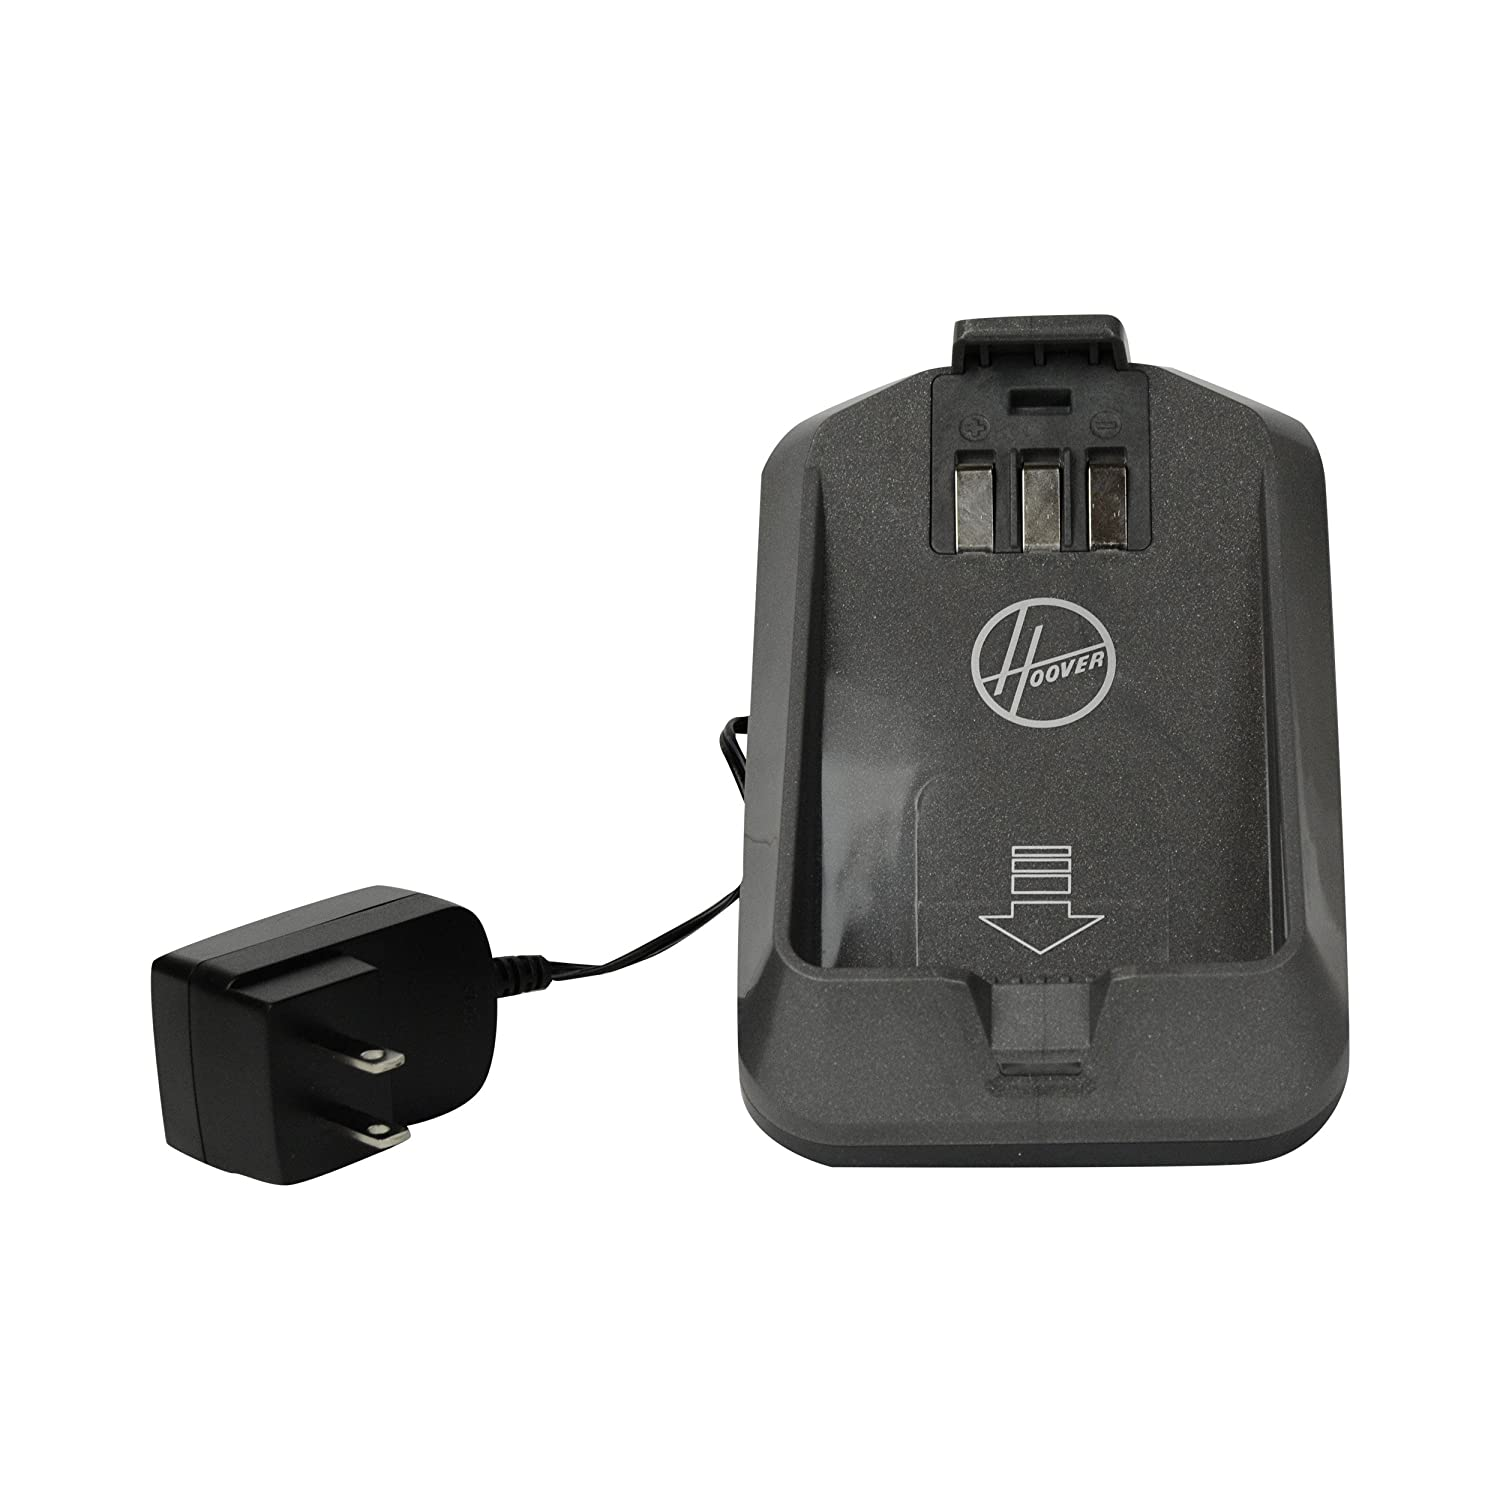 Hoover BH03220 20V 1.5 Hour Battery Charger for BH03100 & BH03120